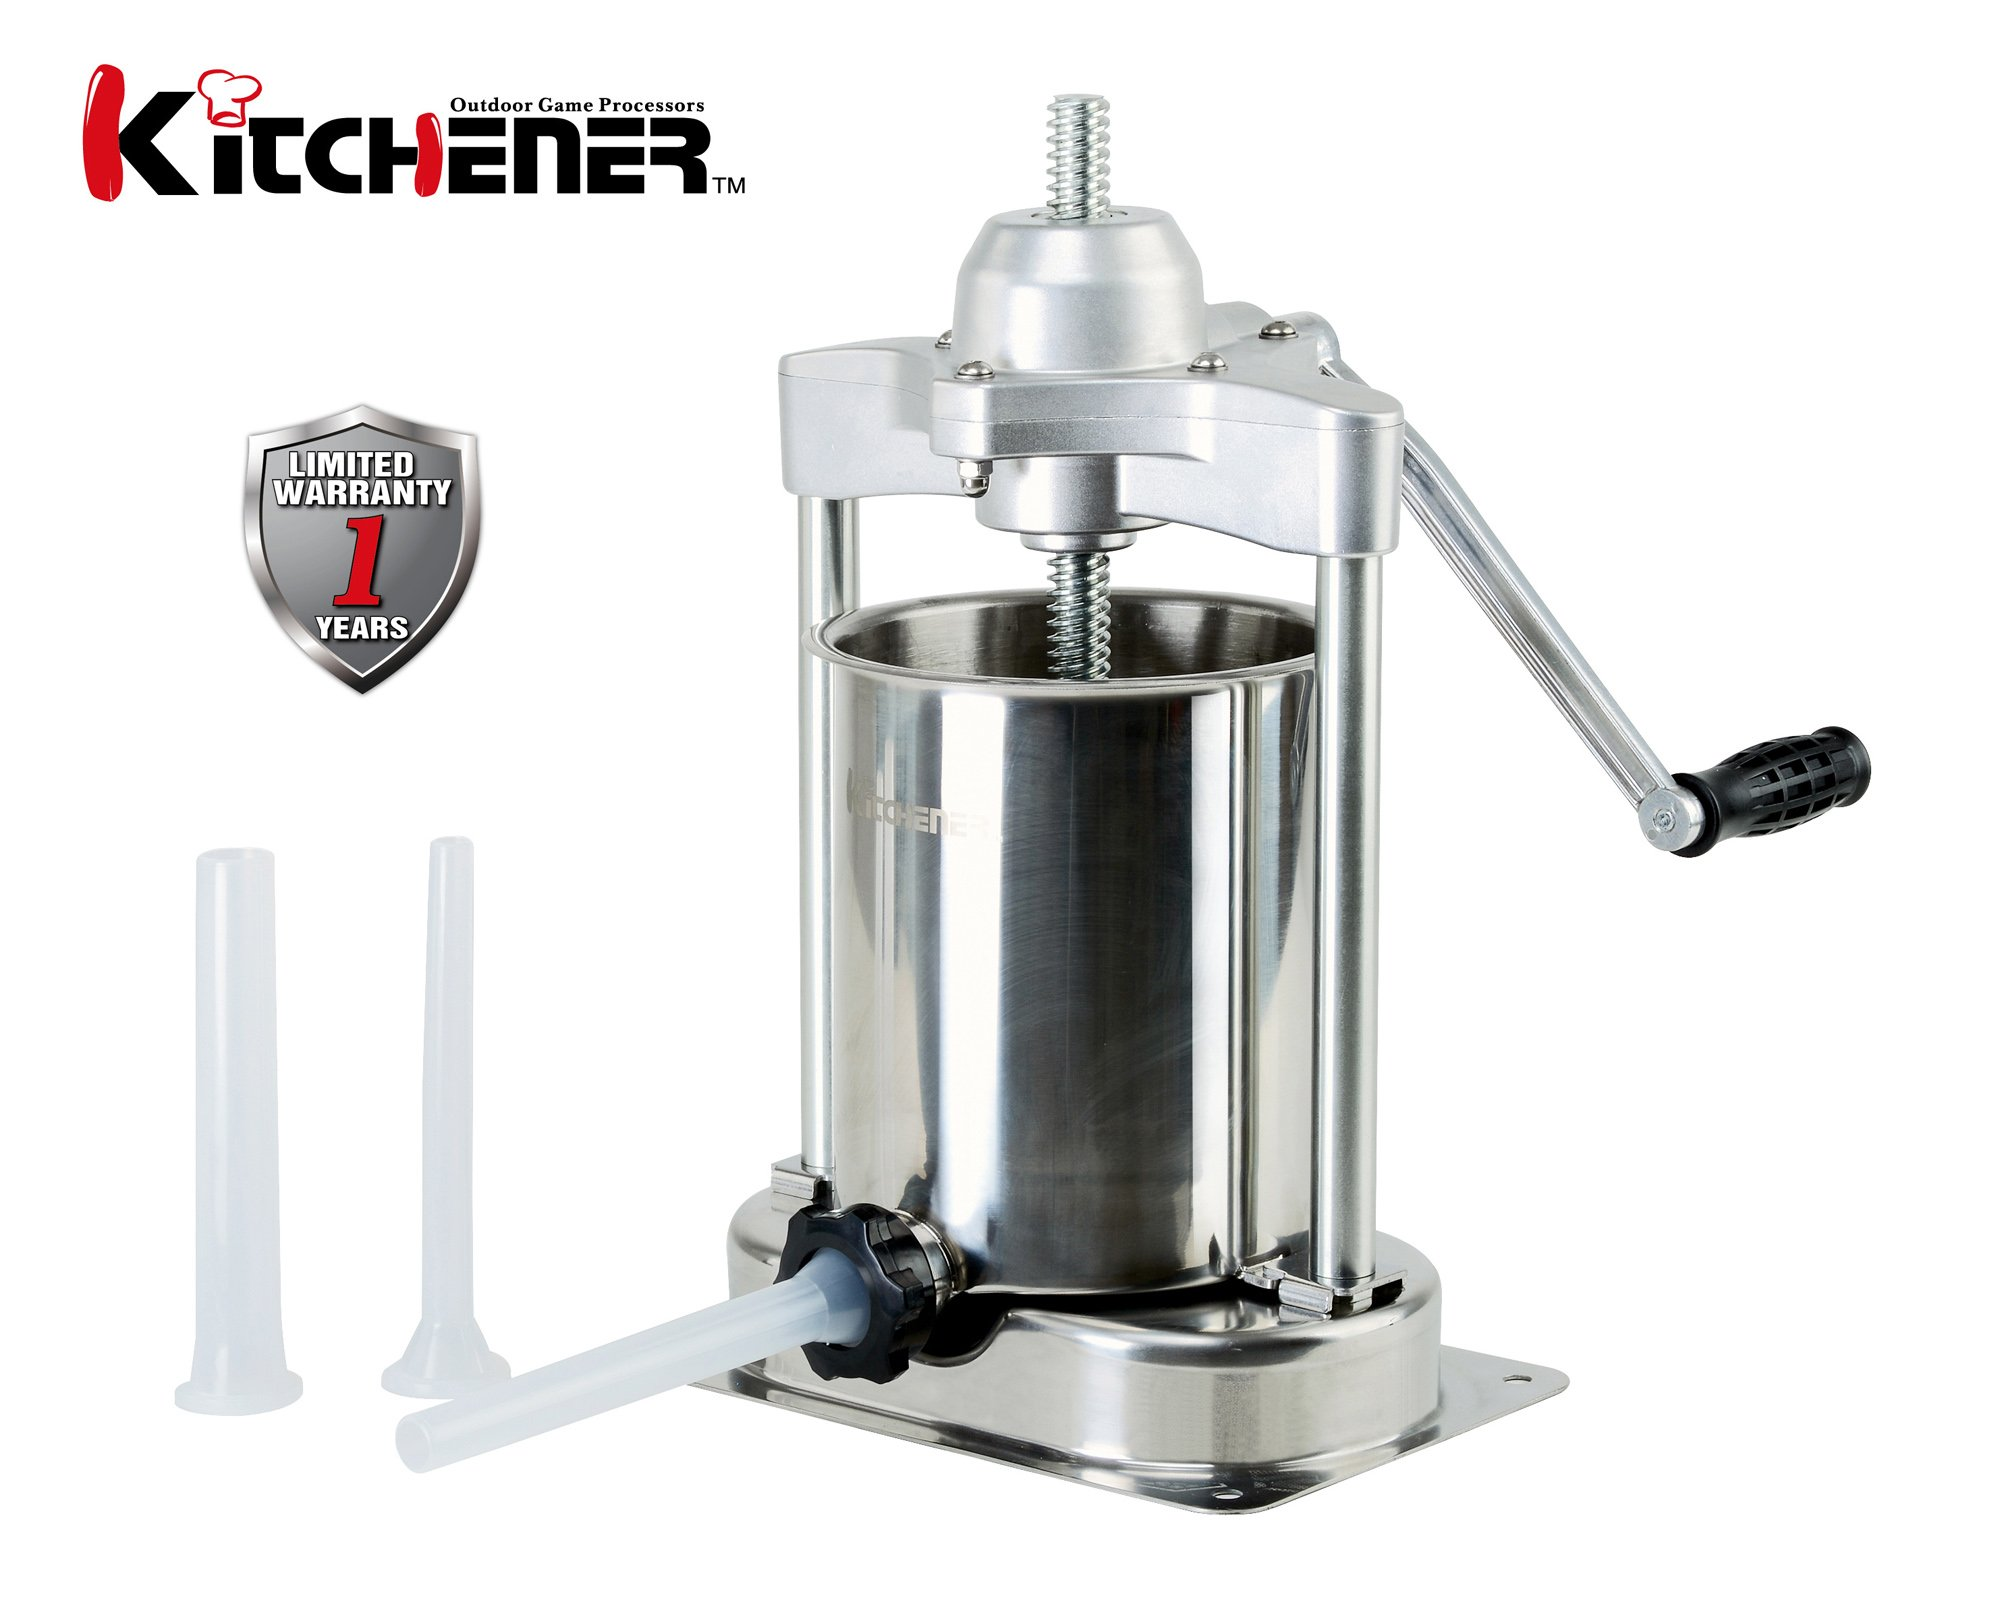 KITCHENER- Heavy Duty Stainless Steel Vertical Sausage Stuffer/Filler/Maker with 3 Stuffing Tubes (Heavy Duty: 15-Lbs)